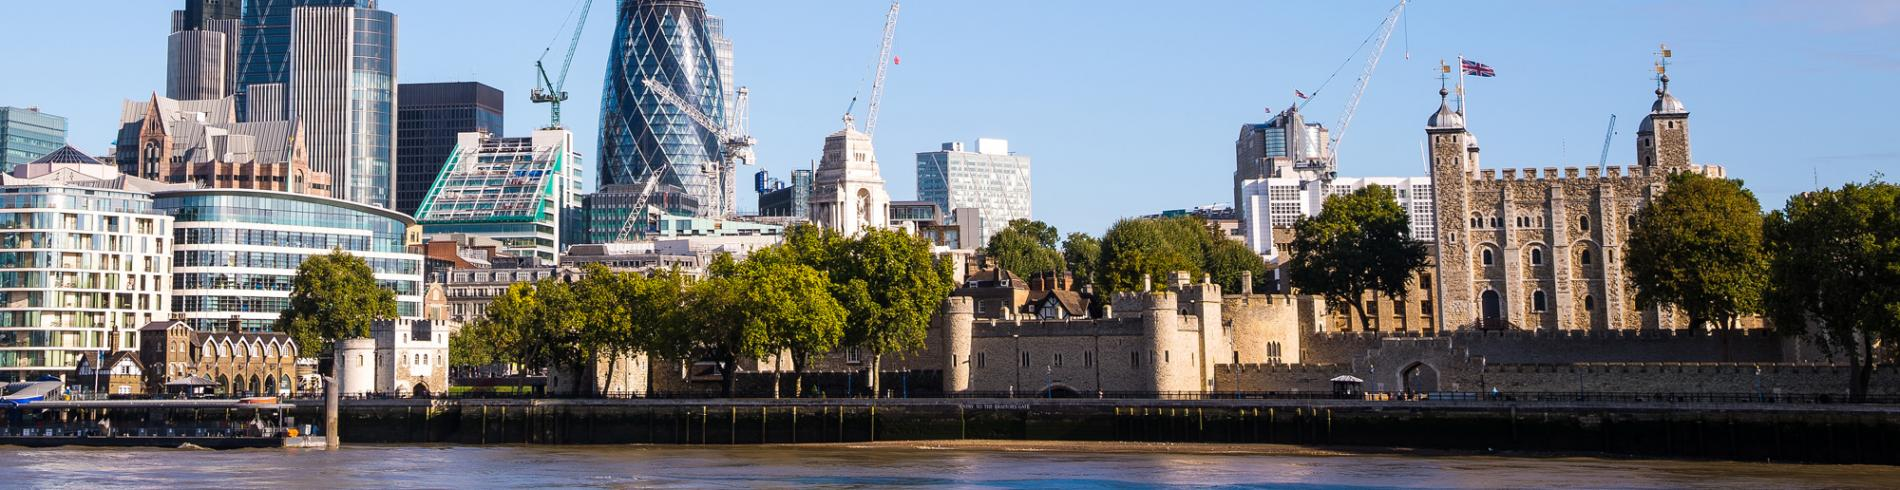 The Tower of London and the City from across the river